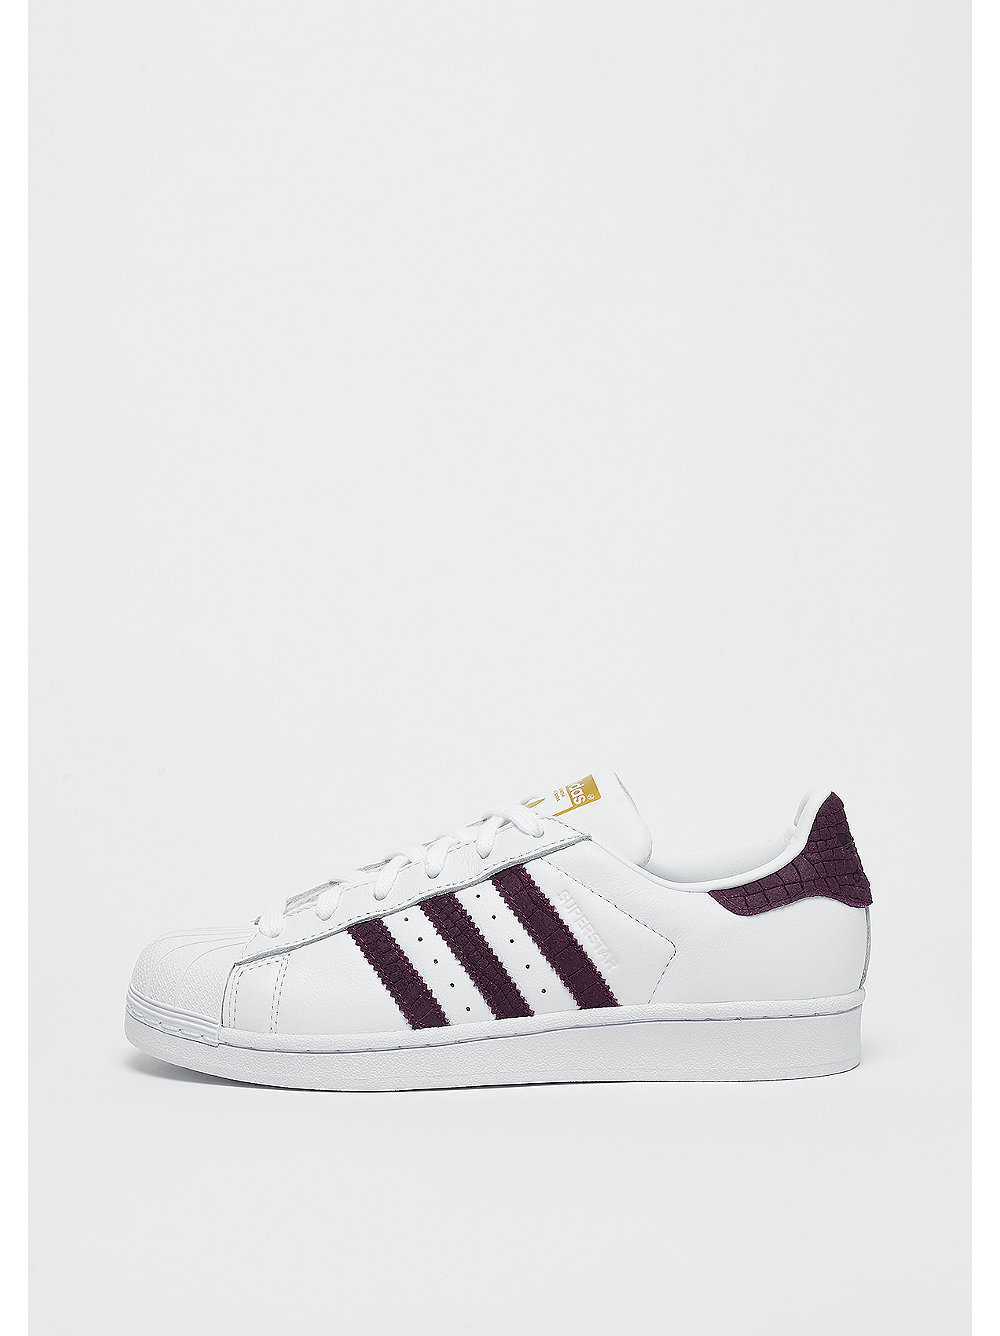 adidas Superstar white-red night-gold metallic